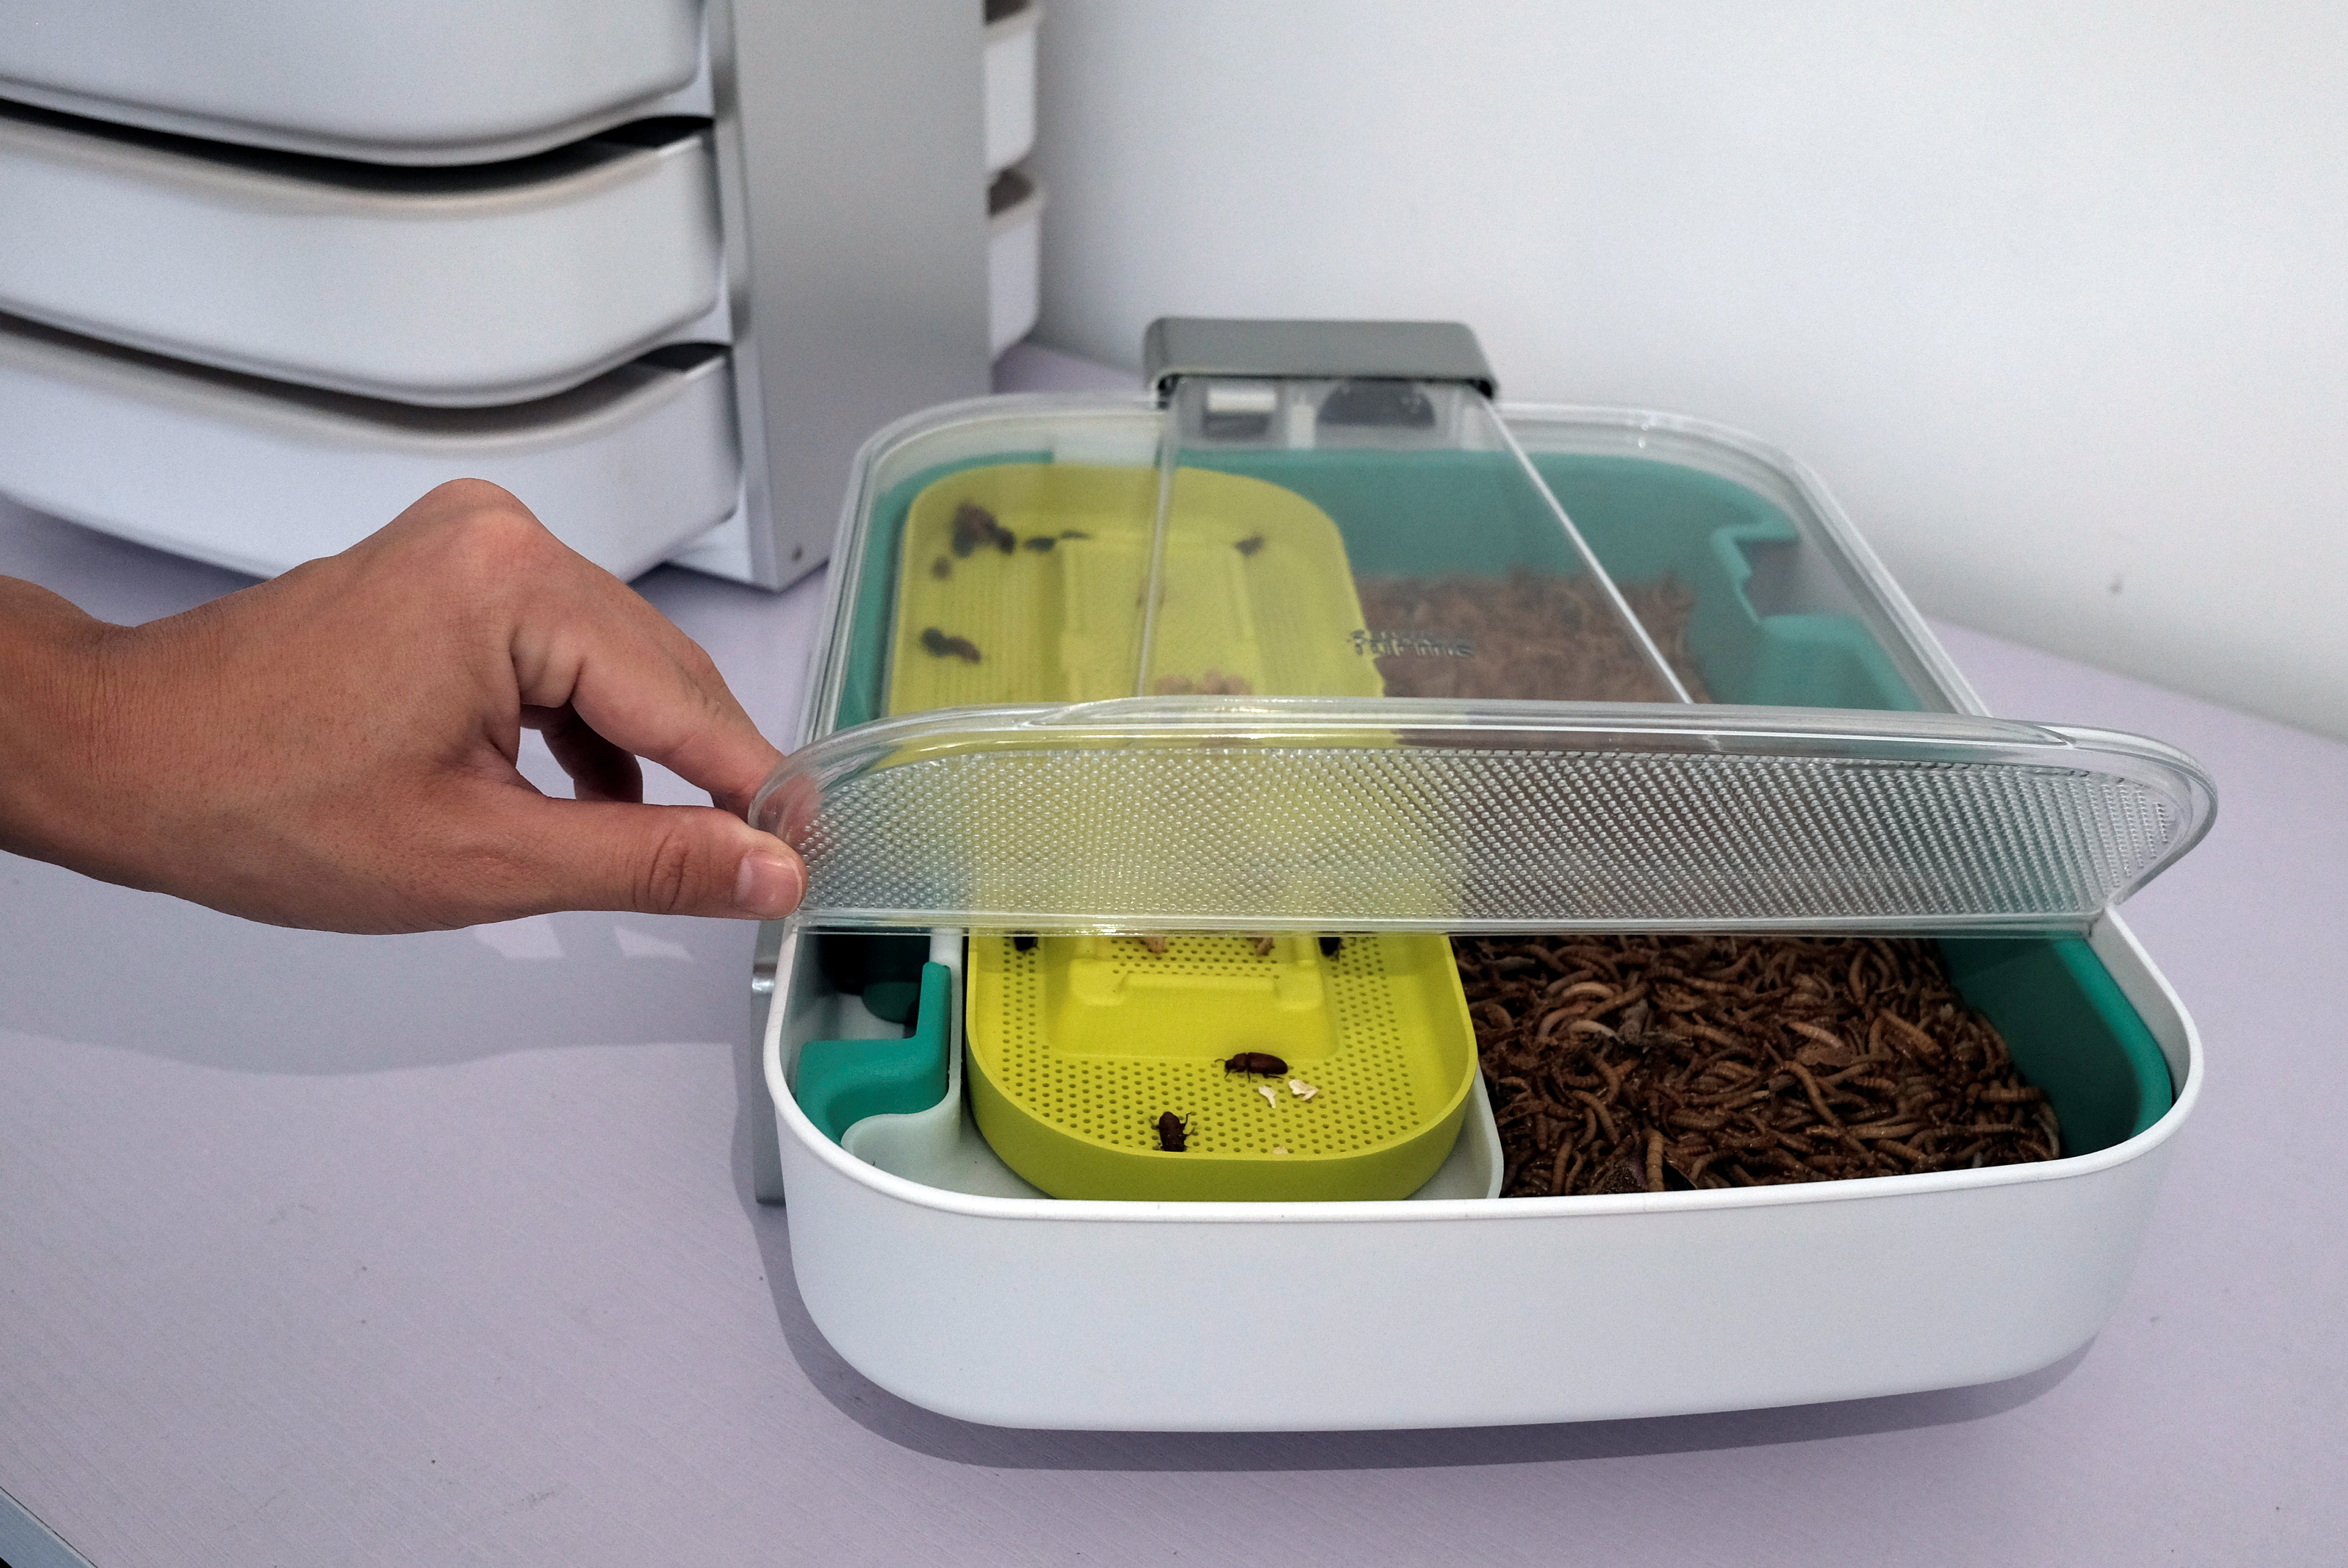 Mealworms and mealworm beetles are seen inside a mealworm incubator in Hong Kong